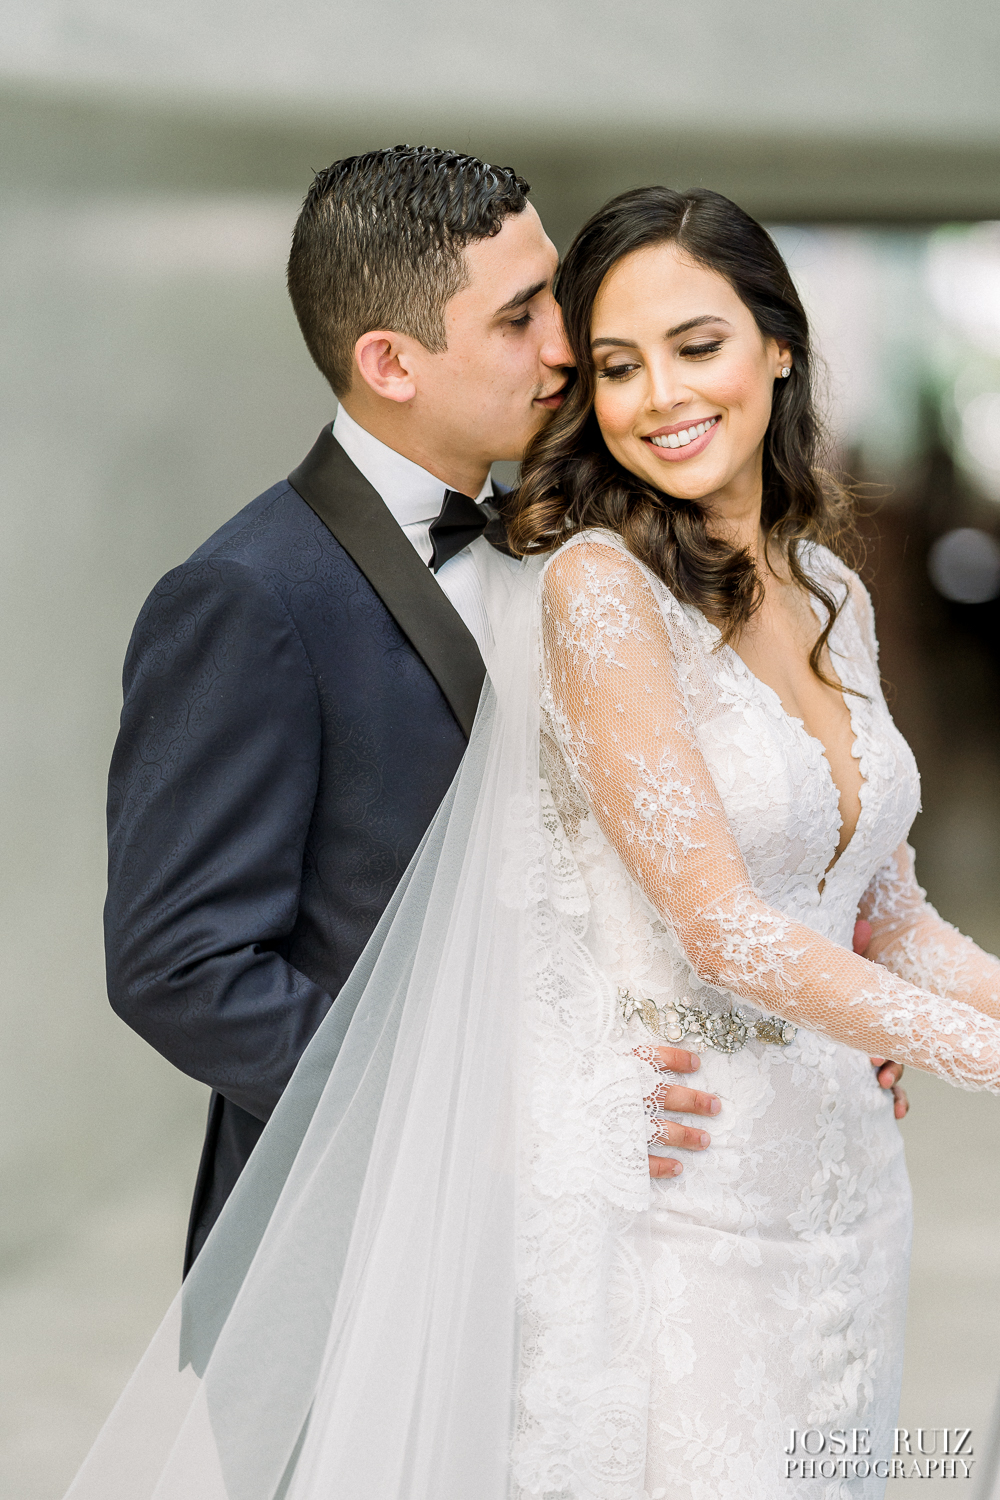 Jose Ruiz Photography- Veronica & Ivan-0104.jpg